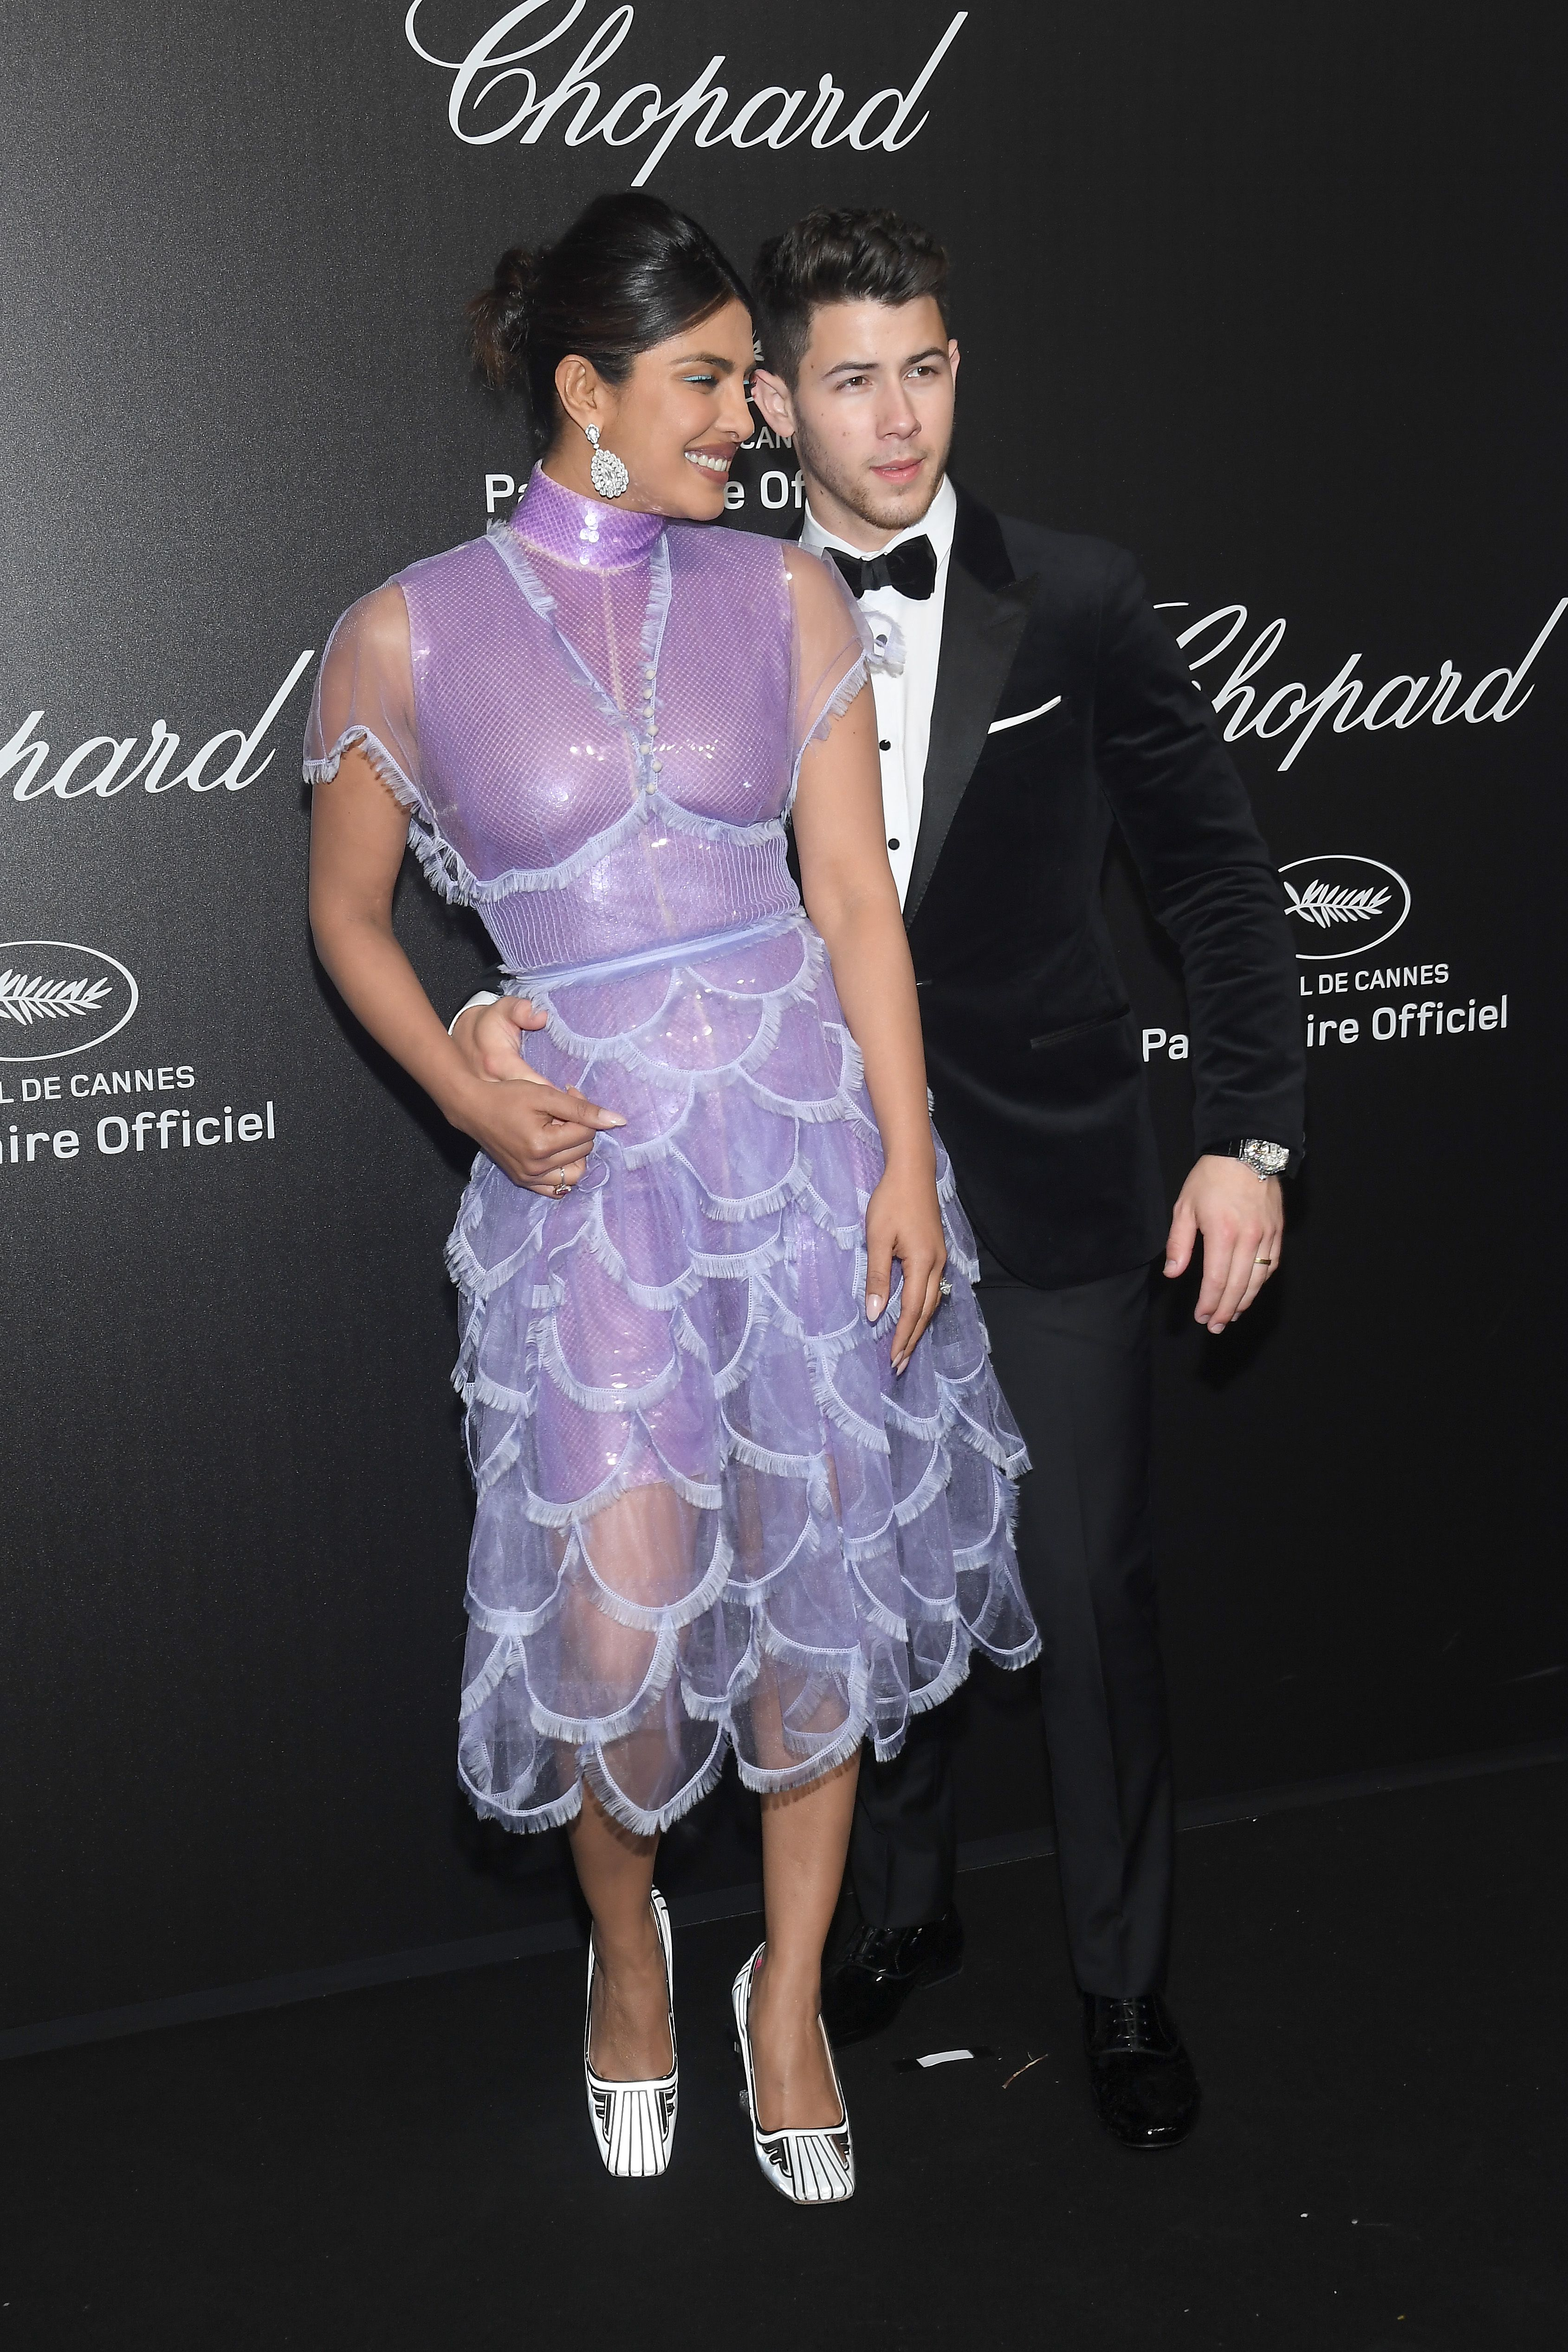 Priyanka Chopra and Nick Jonas Were Very Well-Dressed and Cuddly at Chopard's Cannes Party